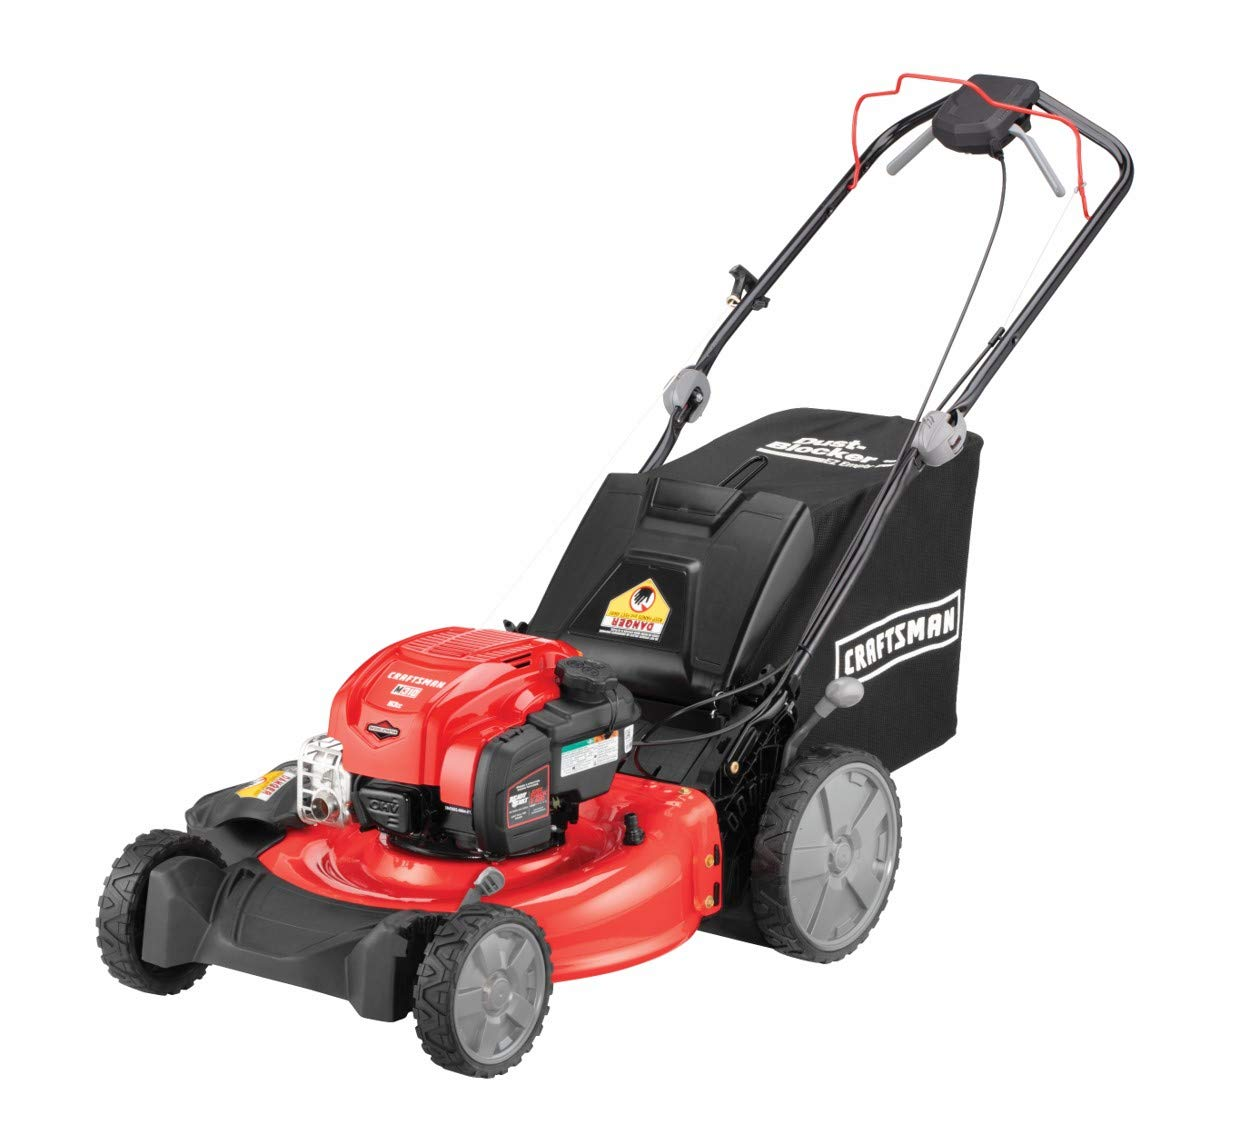 Craftsman M310 163cc Briggs Stratton 725 exi 21-Inch 3-in-1 RWD Self-Propelled Gas Powered Lawn Mower with Bagger